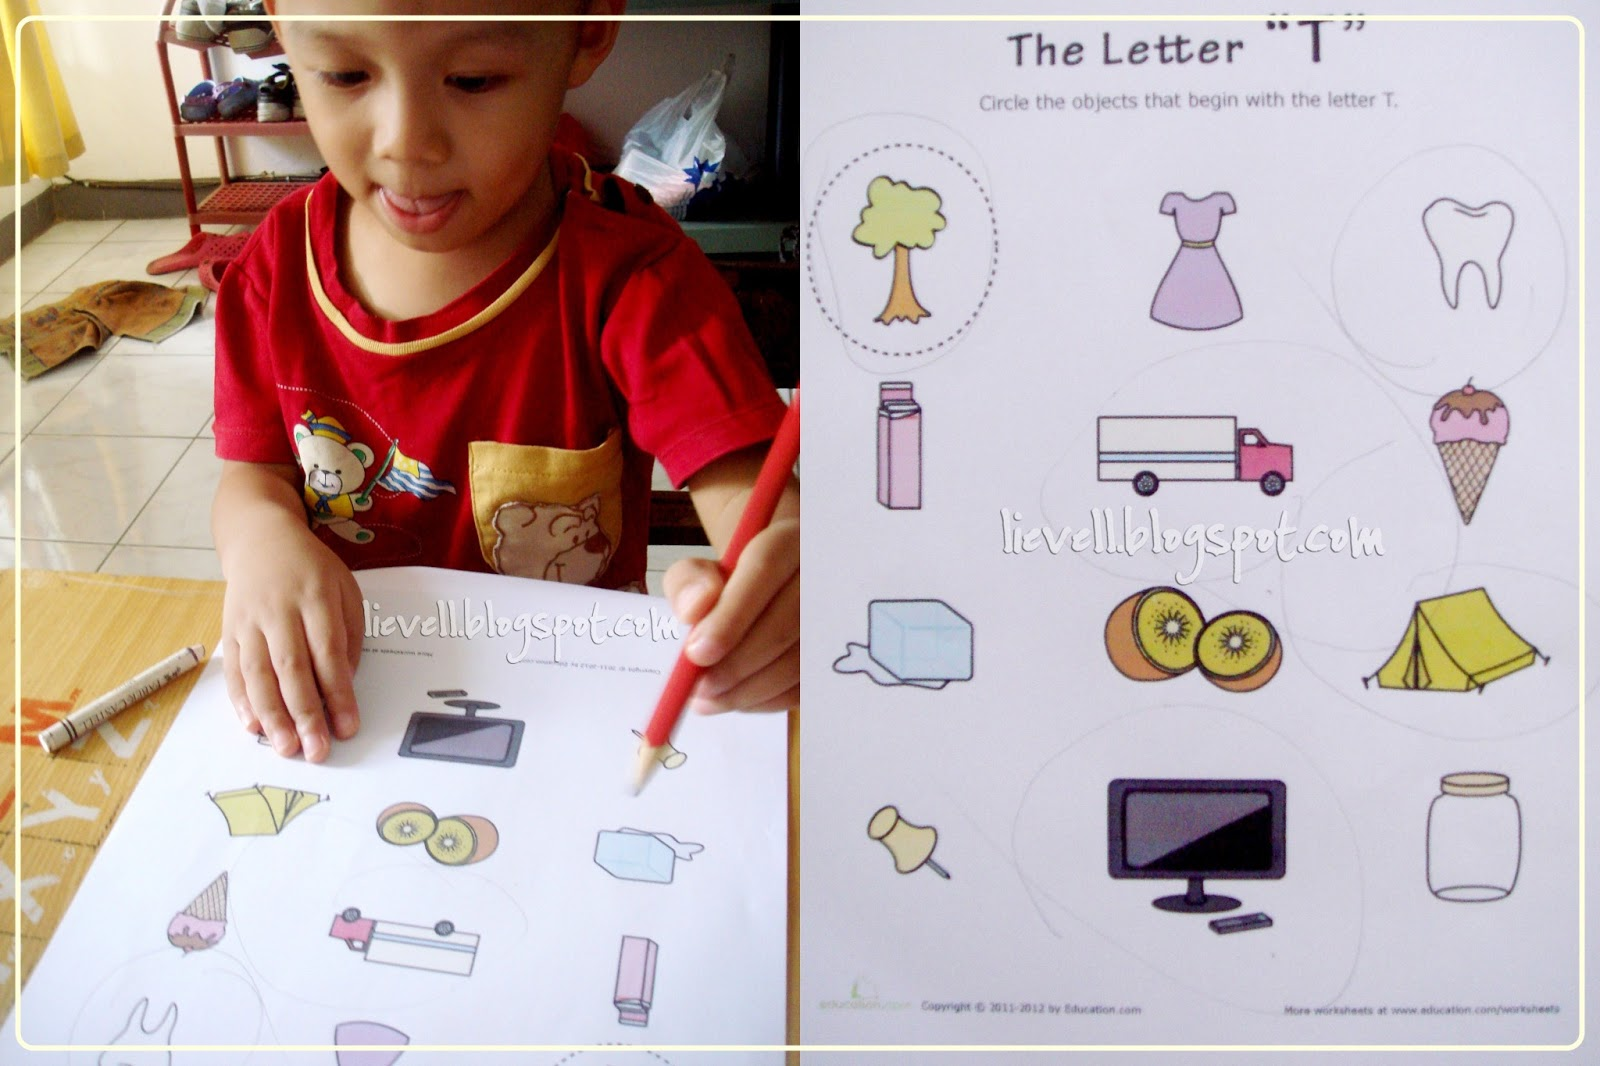 Objects Start with Letter I http://lievell.blogspot.com/2013/01/preschool-letter-t-and-transportation.html